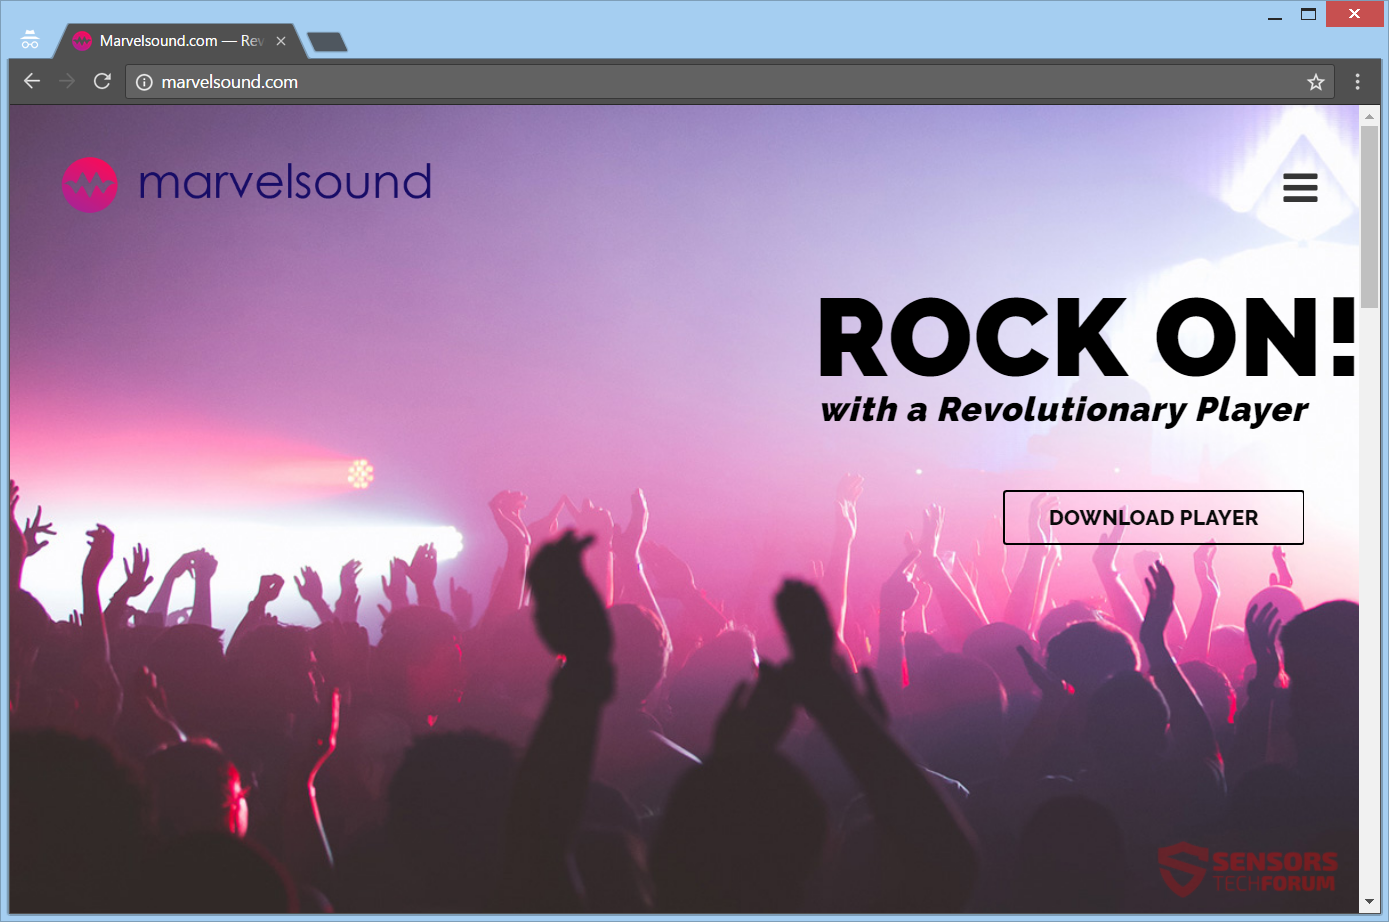 stf-marvelsound-com-marvel-sound-ads-ad-network-main-site-page